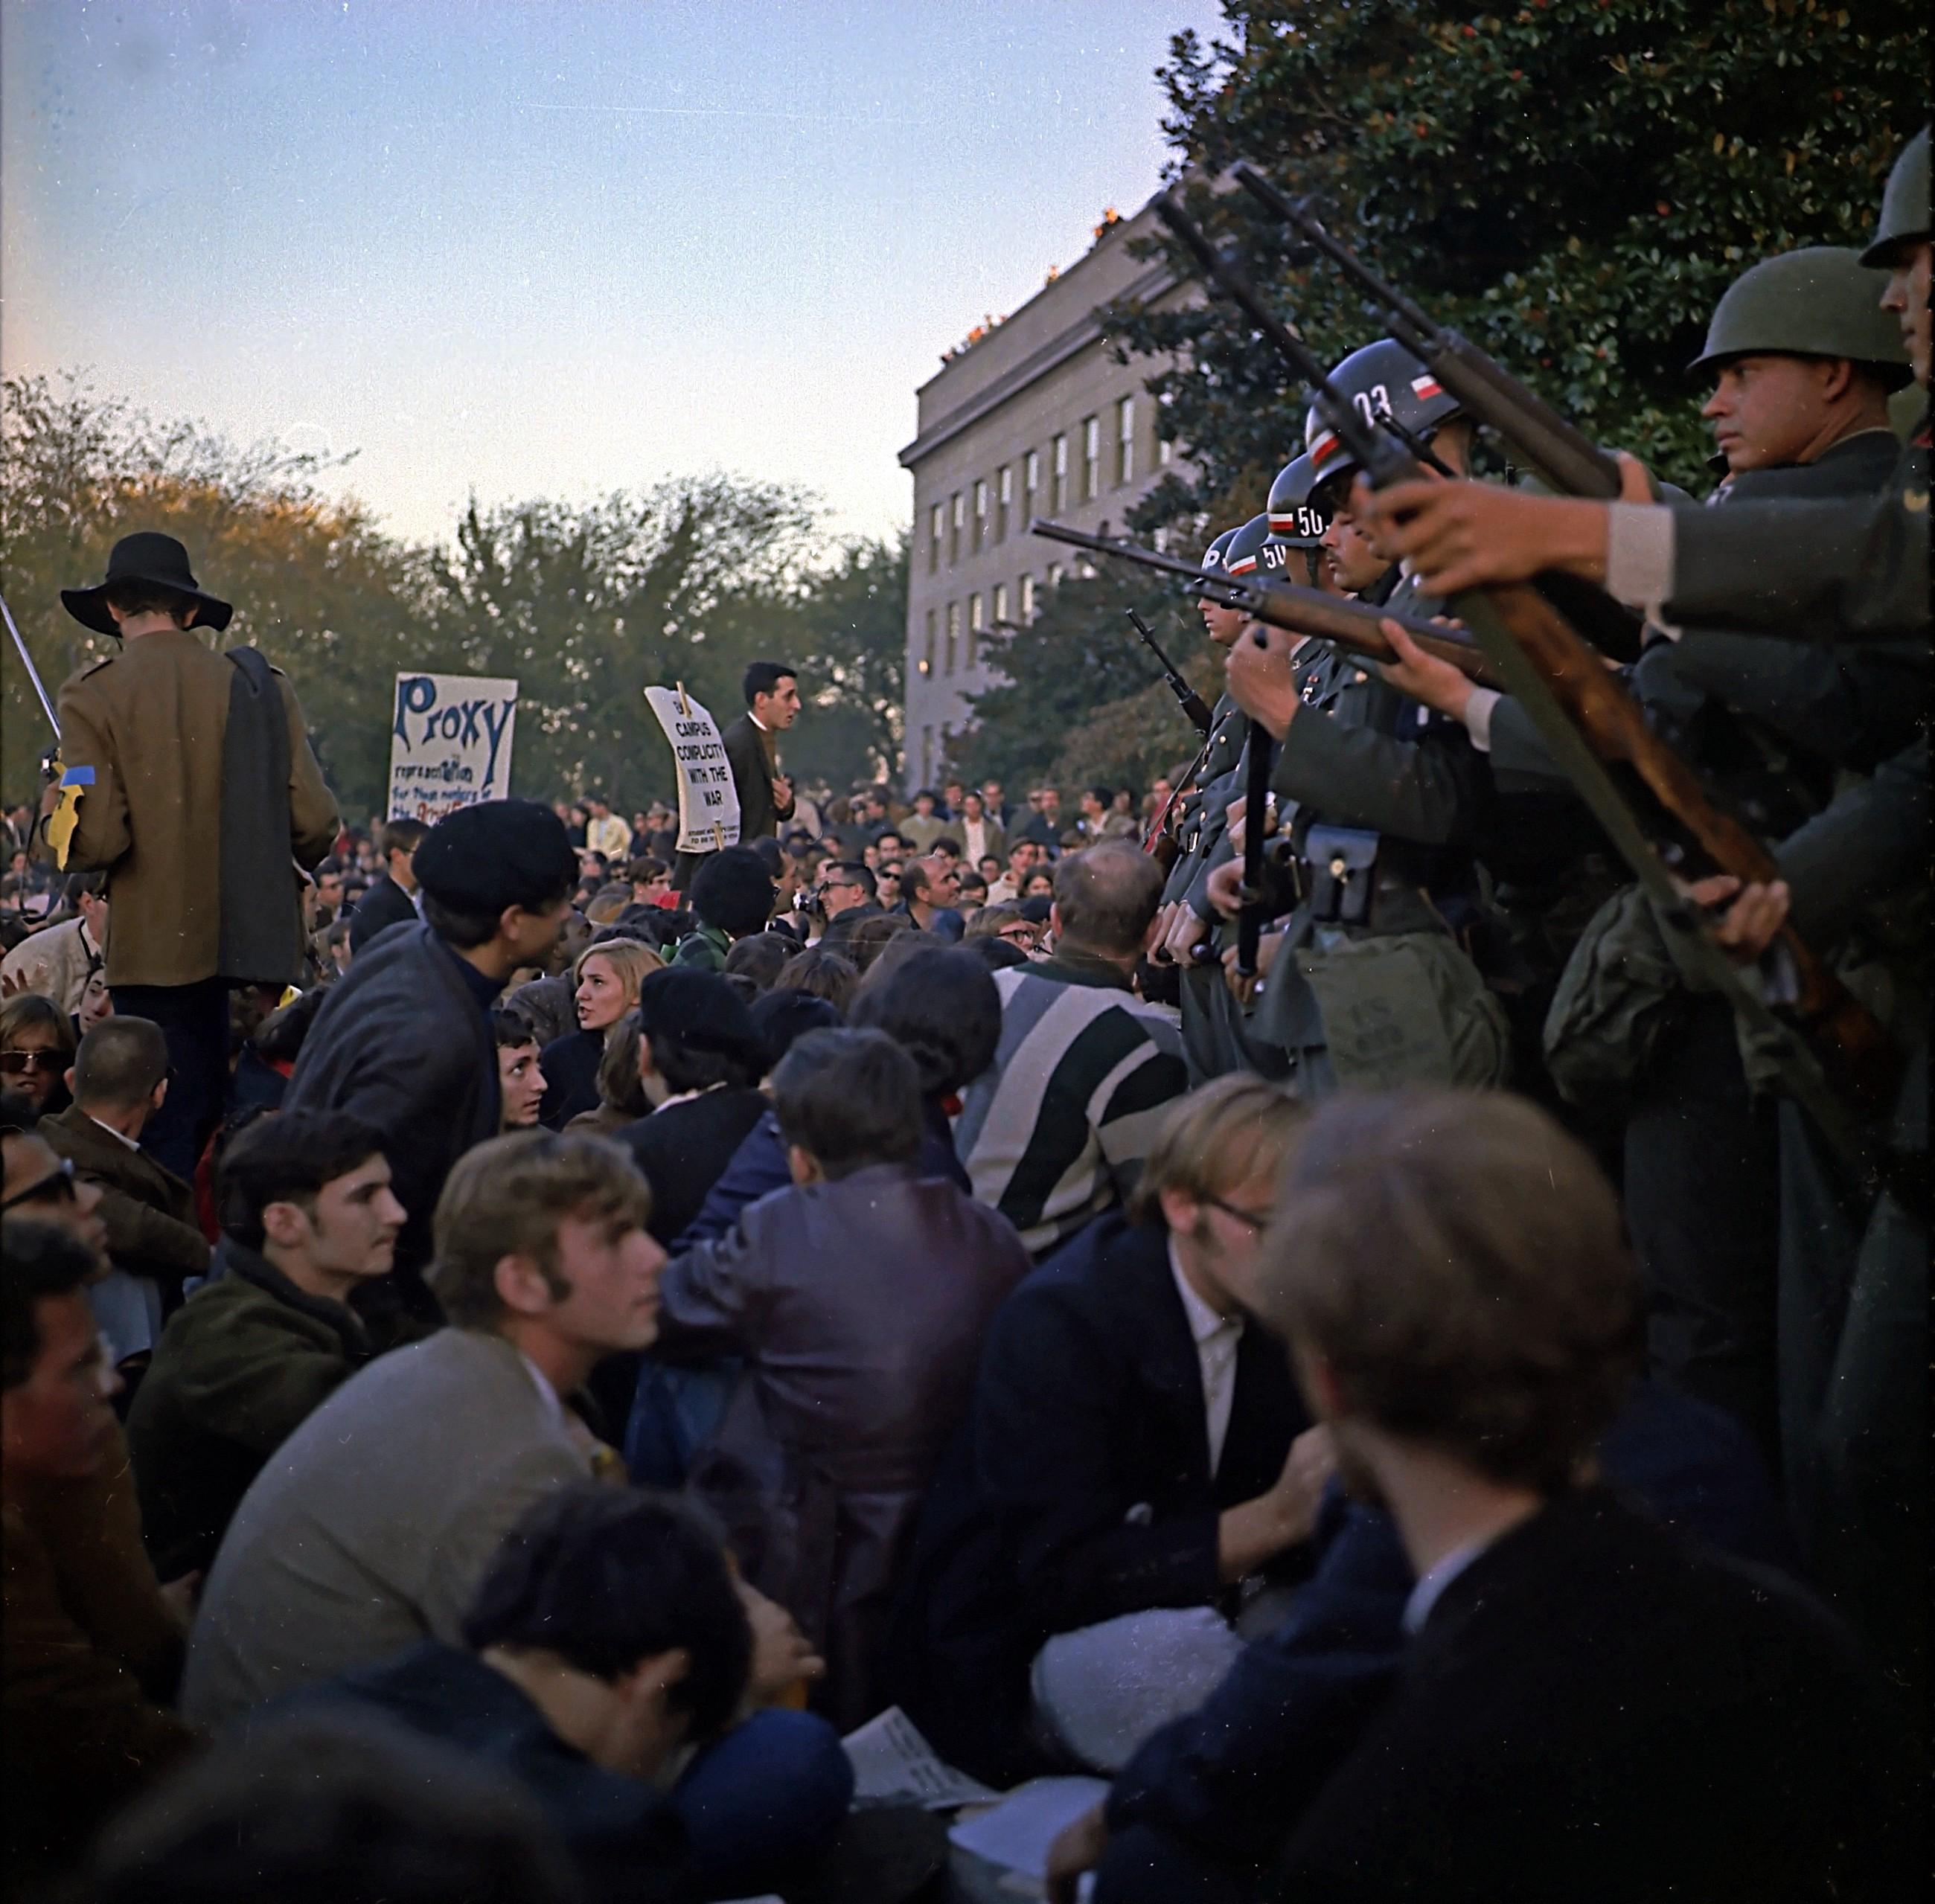 Protestors confront the US Army at the March on the Pentagon, 1967.